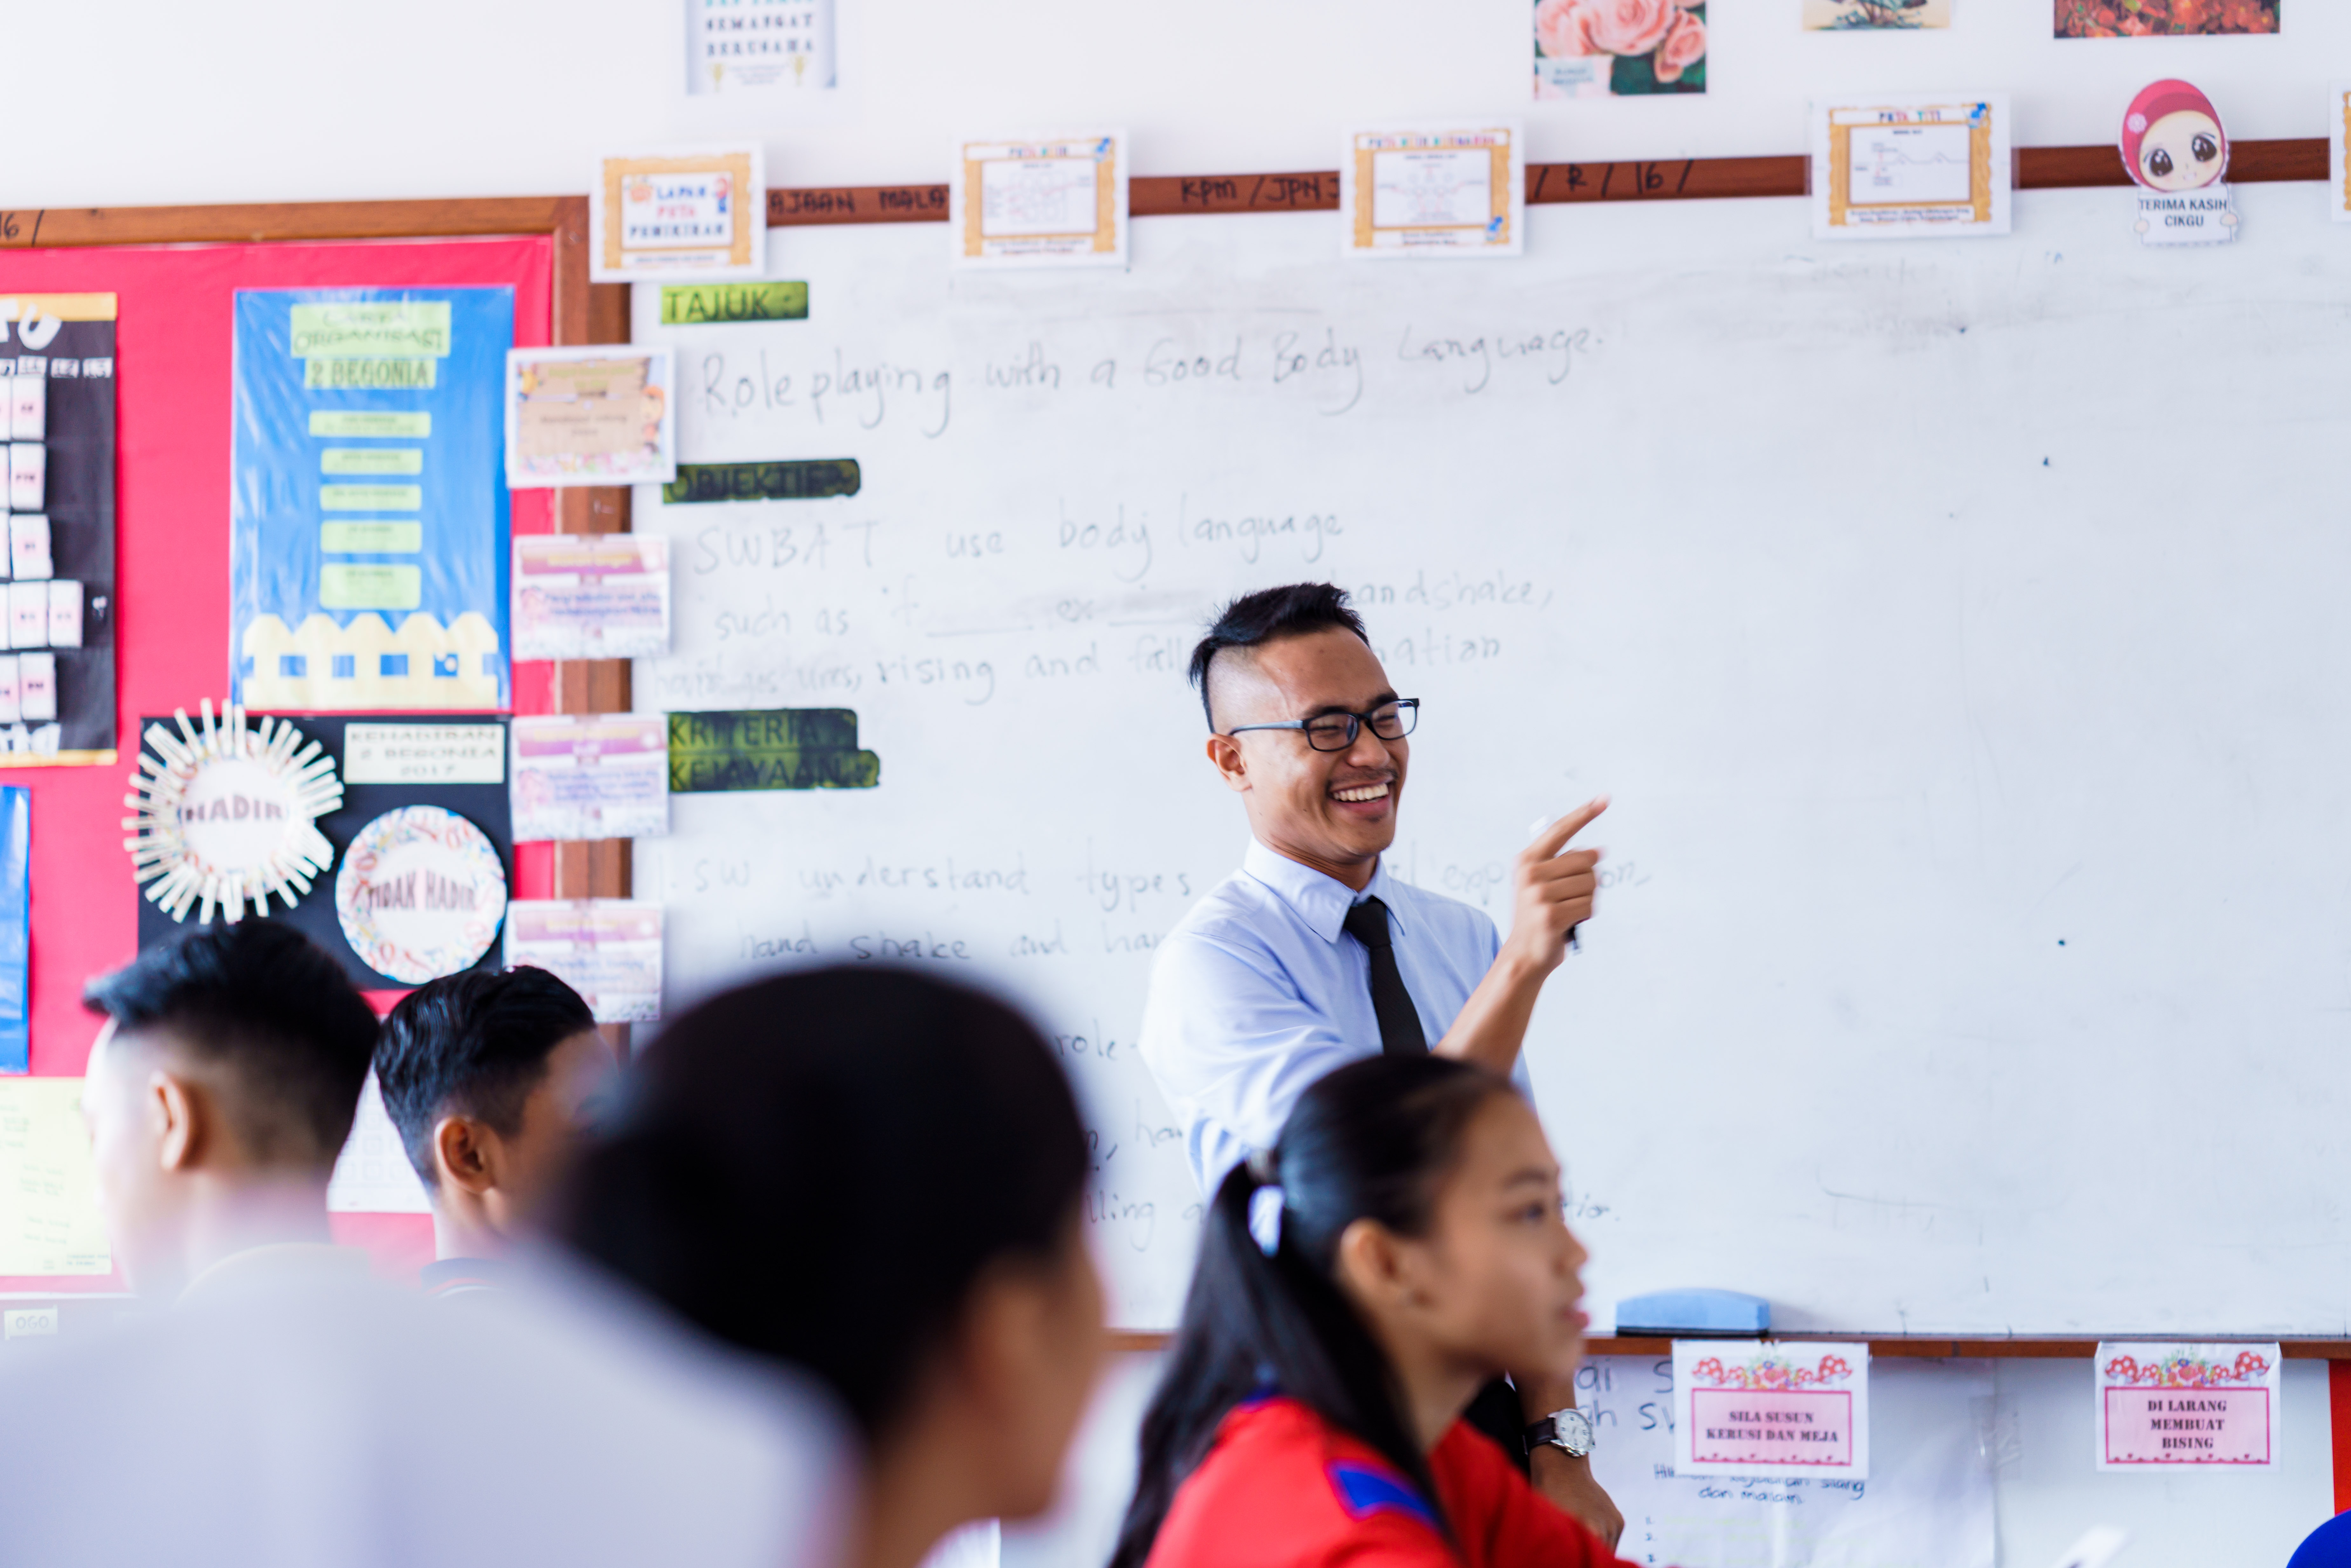 Shocking The Education System Teach For Malaysia Shares Hope Of Ending Education Inequity Epic Journal